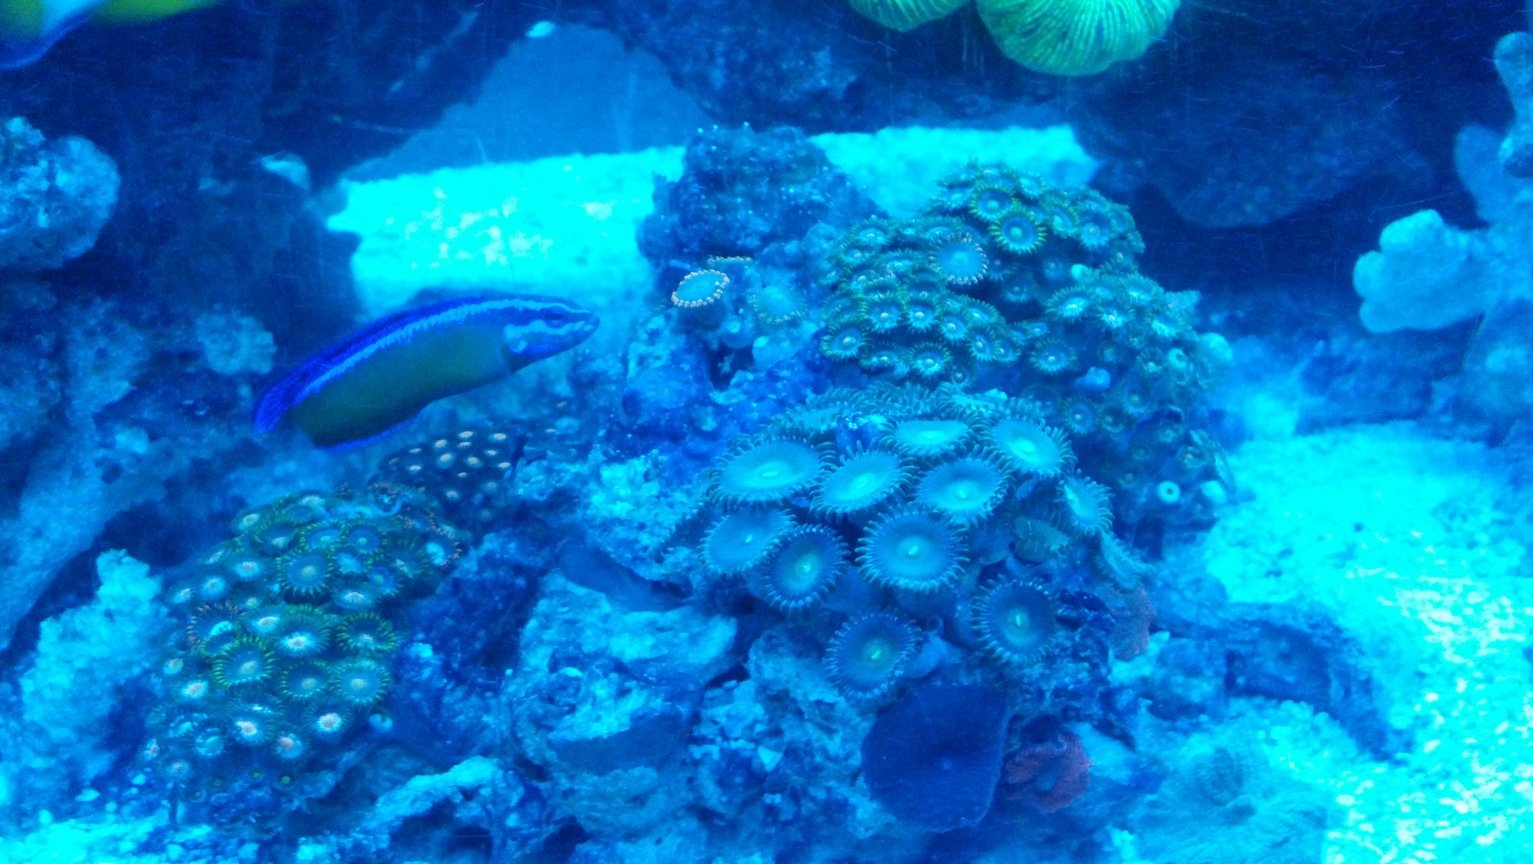 corals inverts - zoanthus sp. - colony polyp, orange/green stocking in 72 gallons tank - Dottyback looking at her Garden